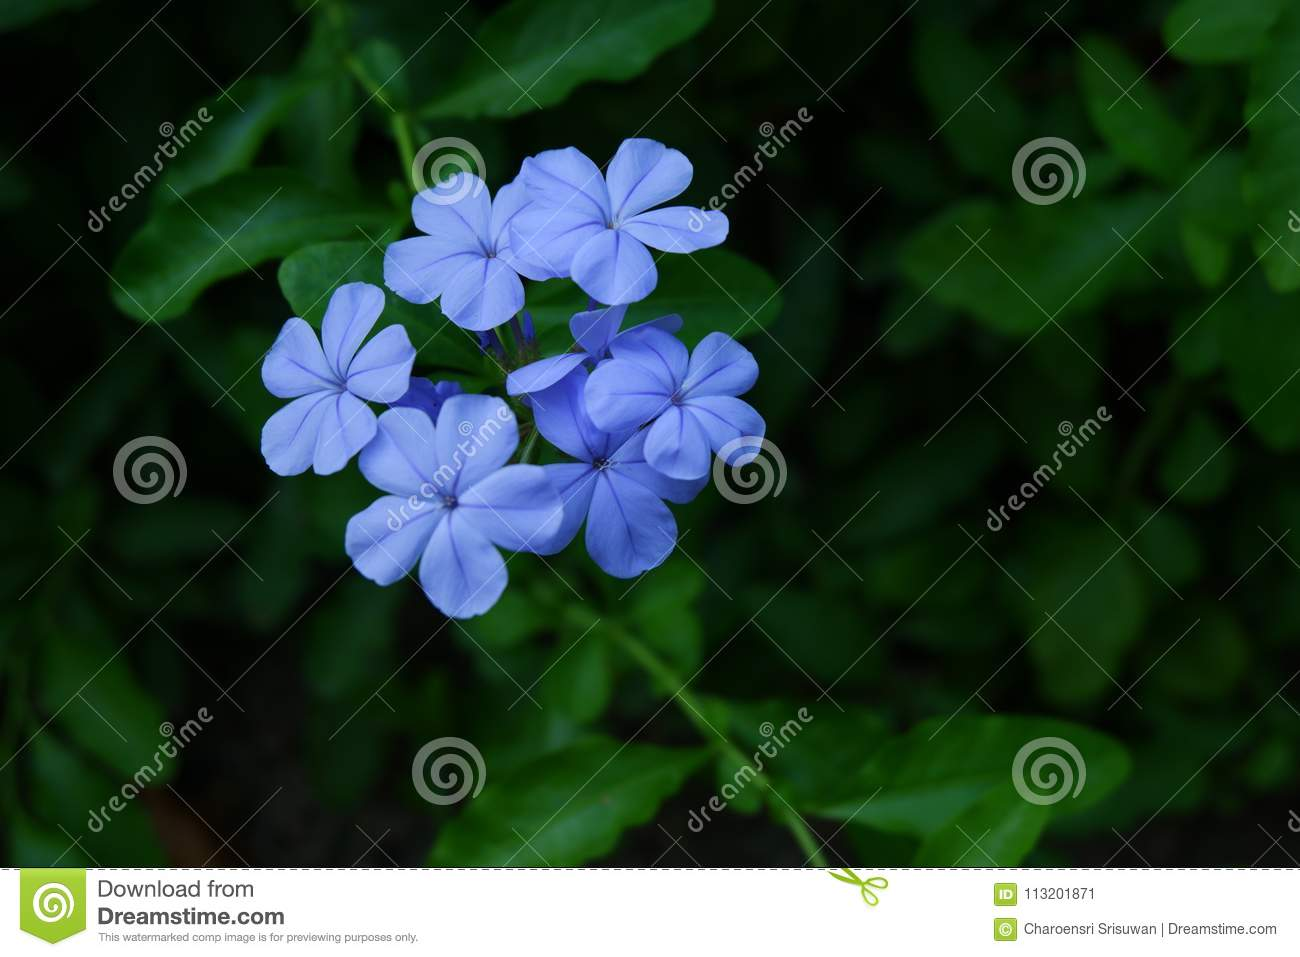 Blue West Indian Periwinkle Flower, Catharanthus Roseus